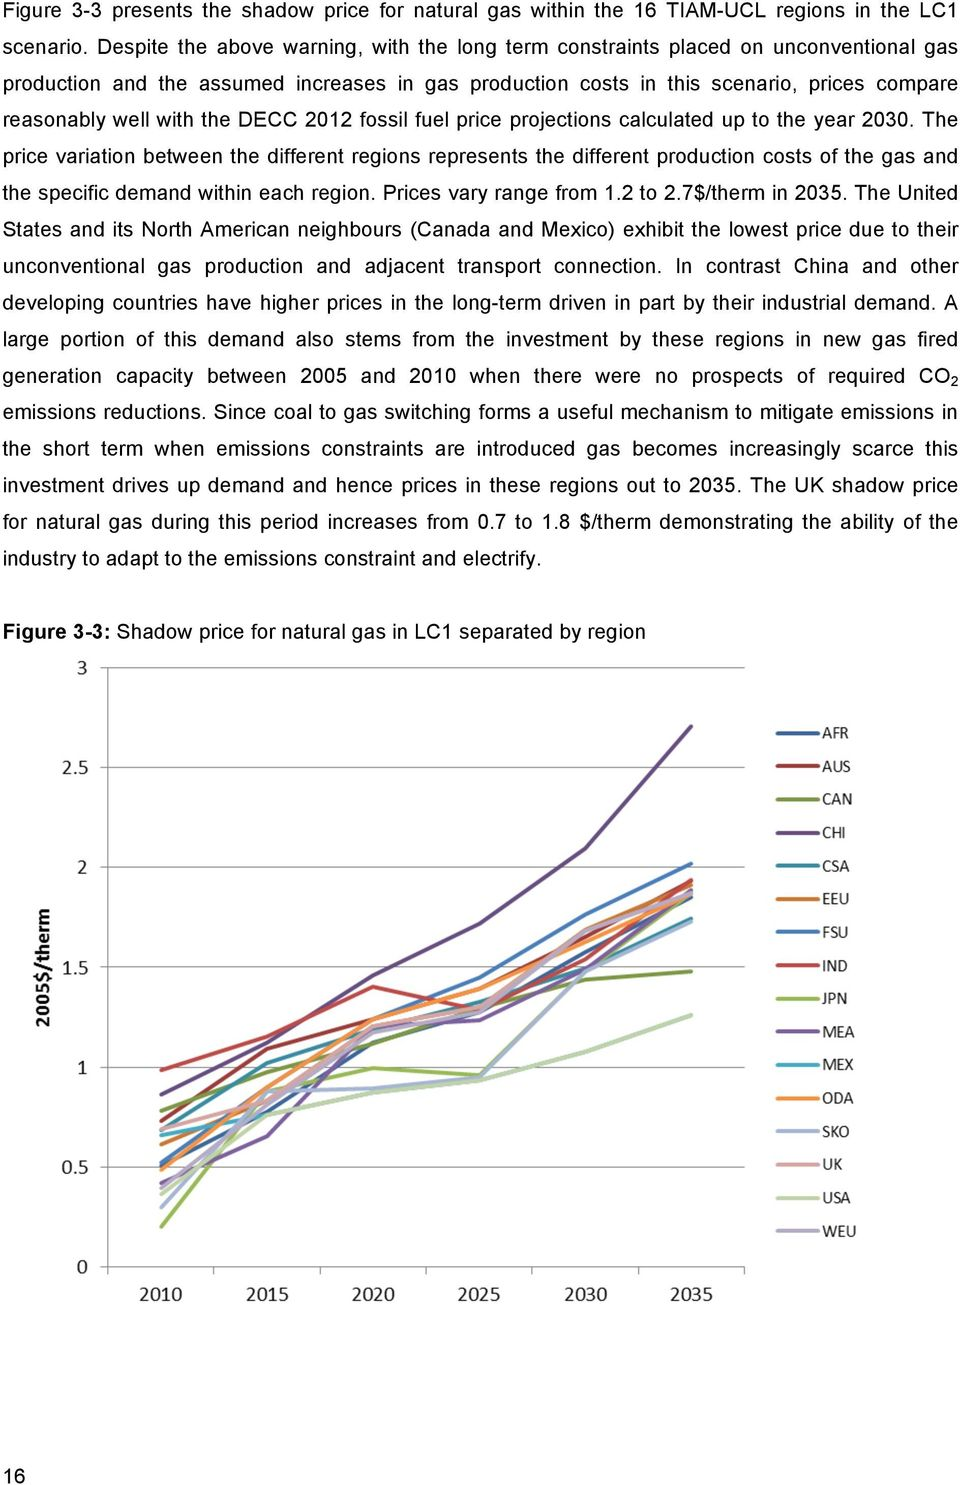 with the DECC 2012 fossil fuel price projections calculated up to the year 2030.